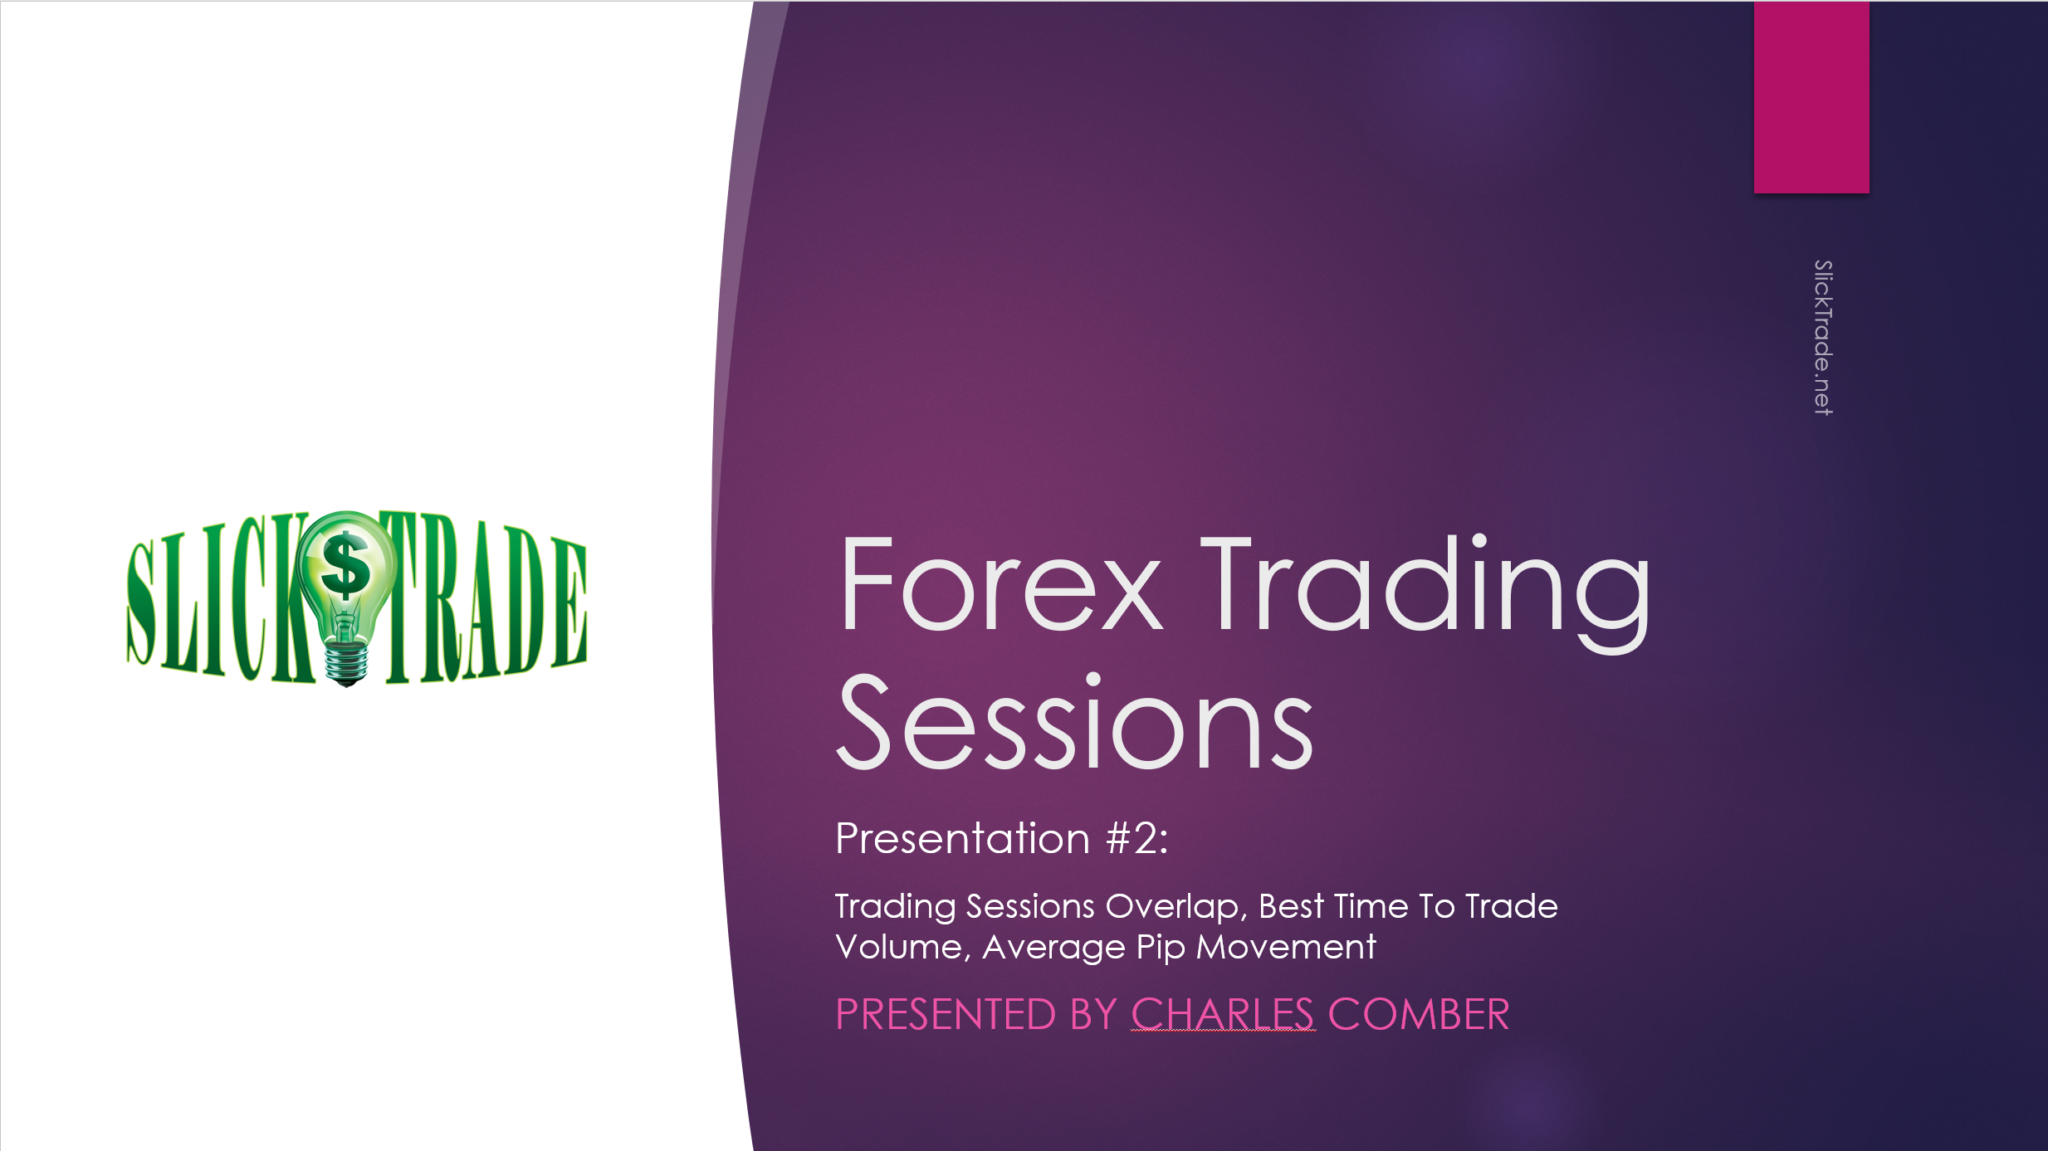 forex trading sessions presentation 2